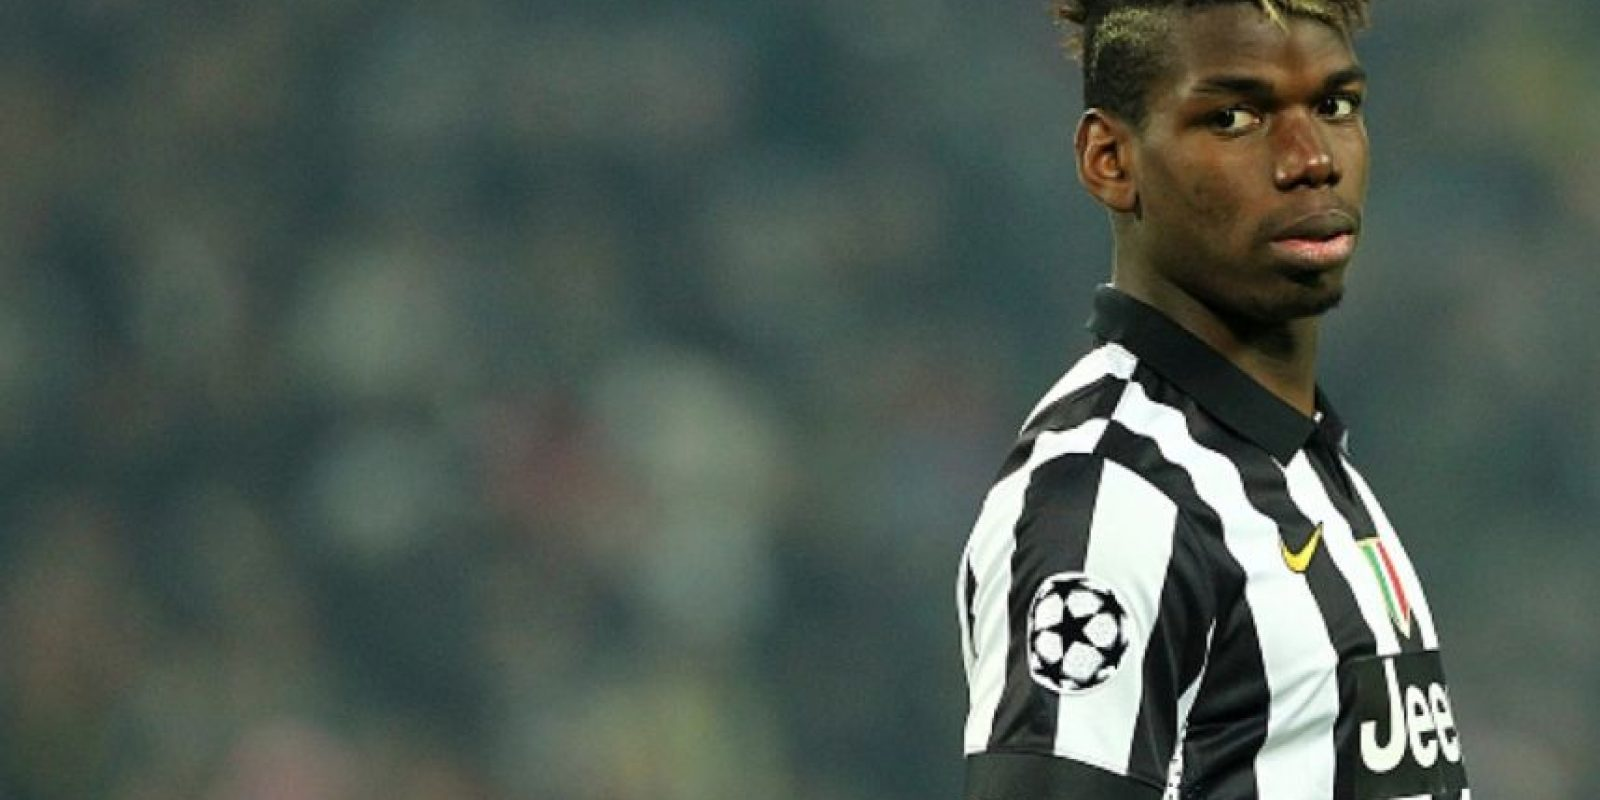 Paul Pogba (Francia) en la vida real. Foto: Getty Images